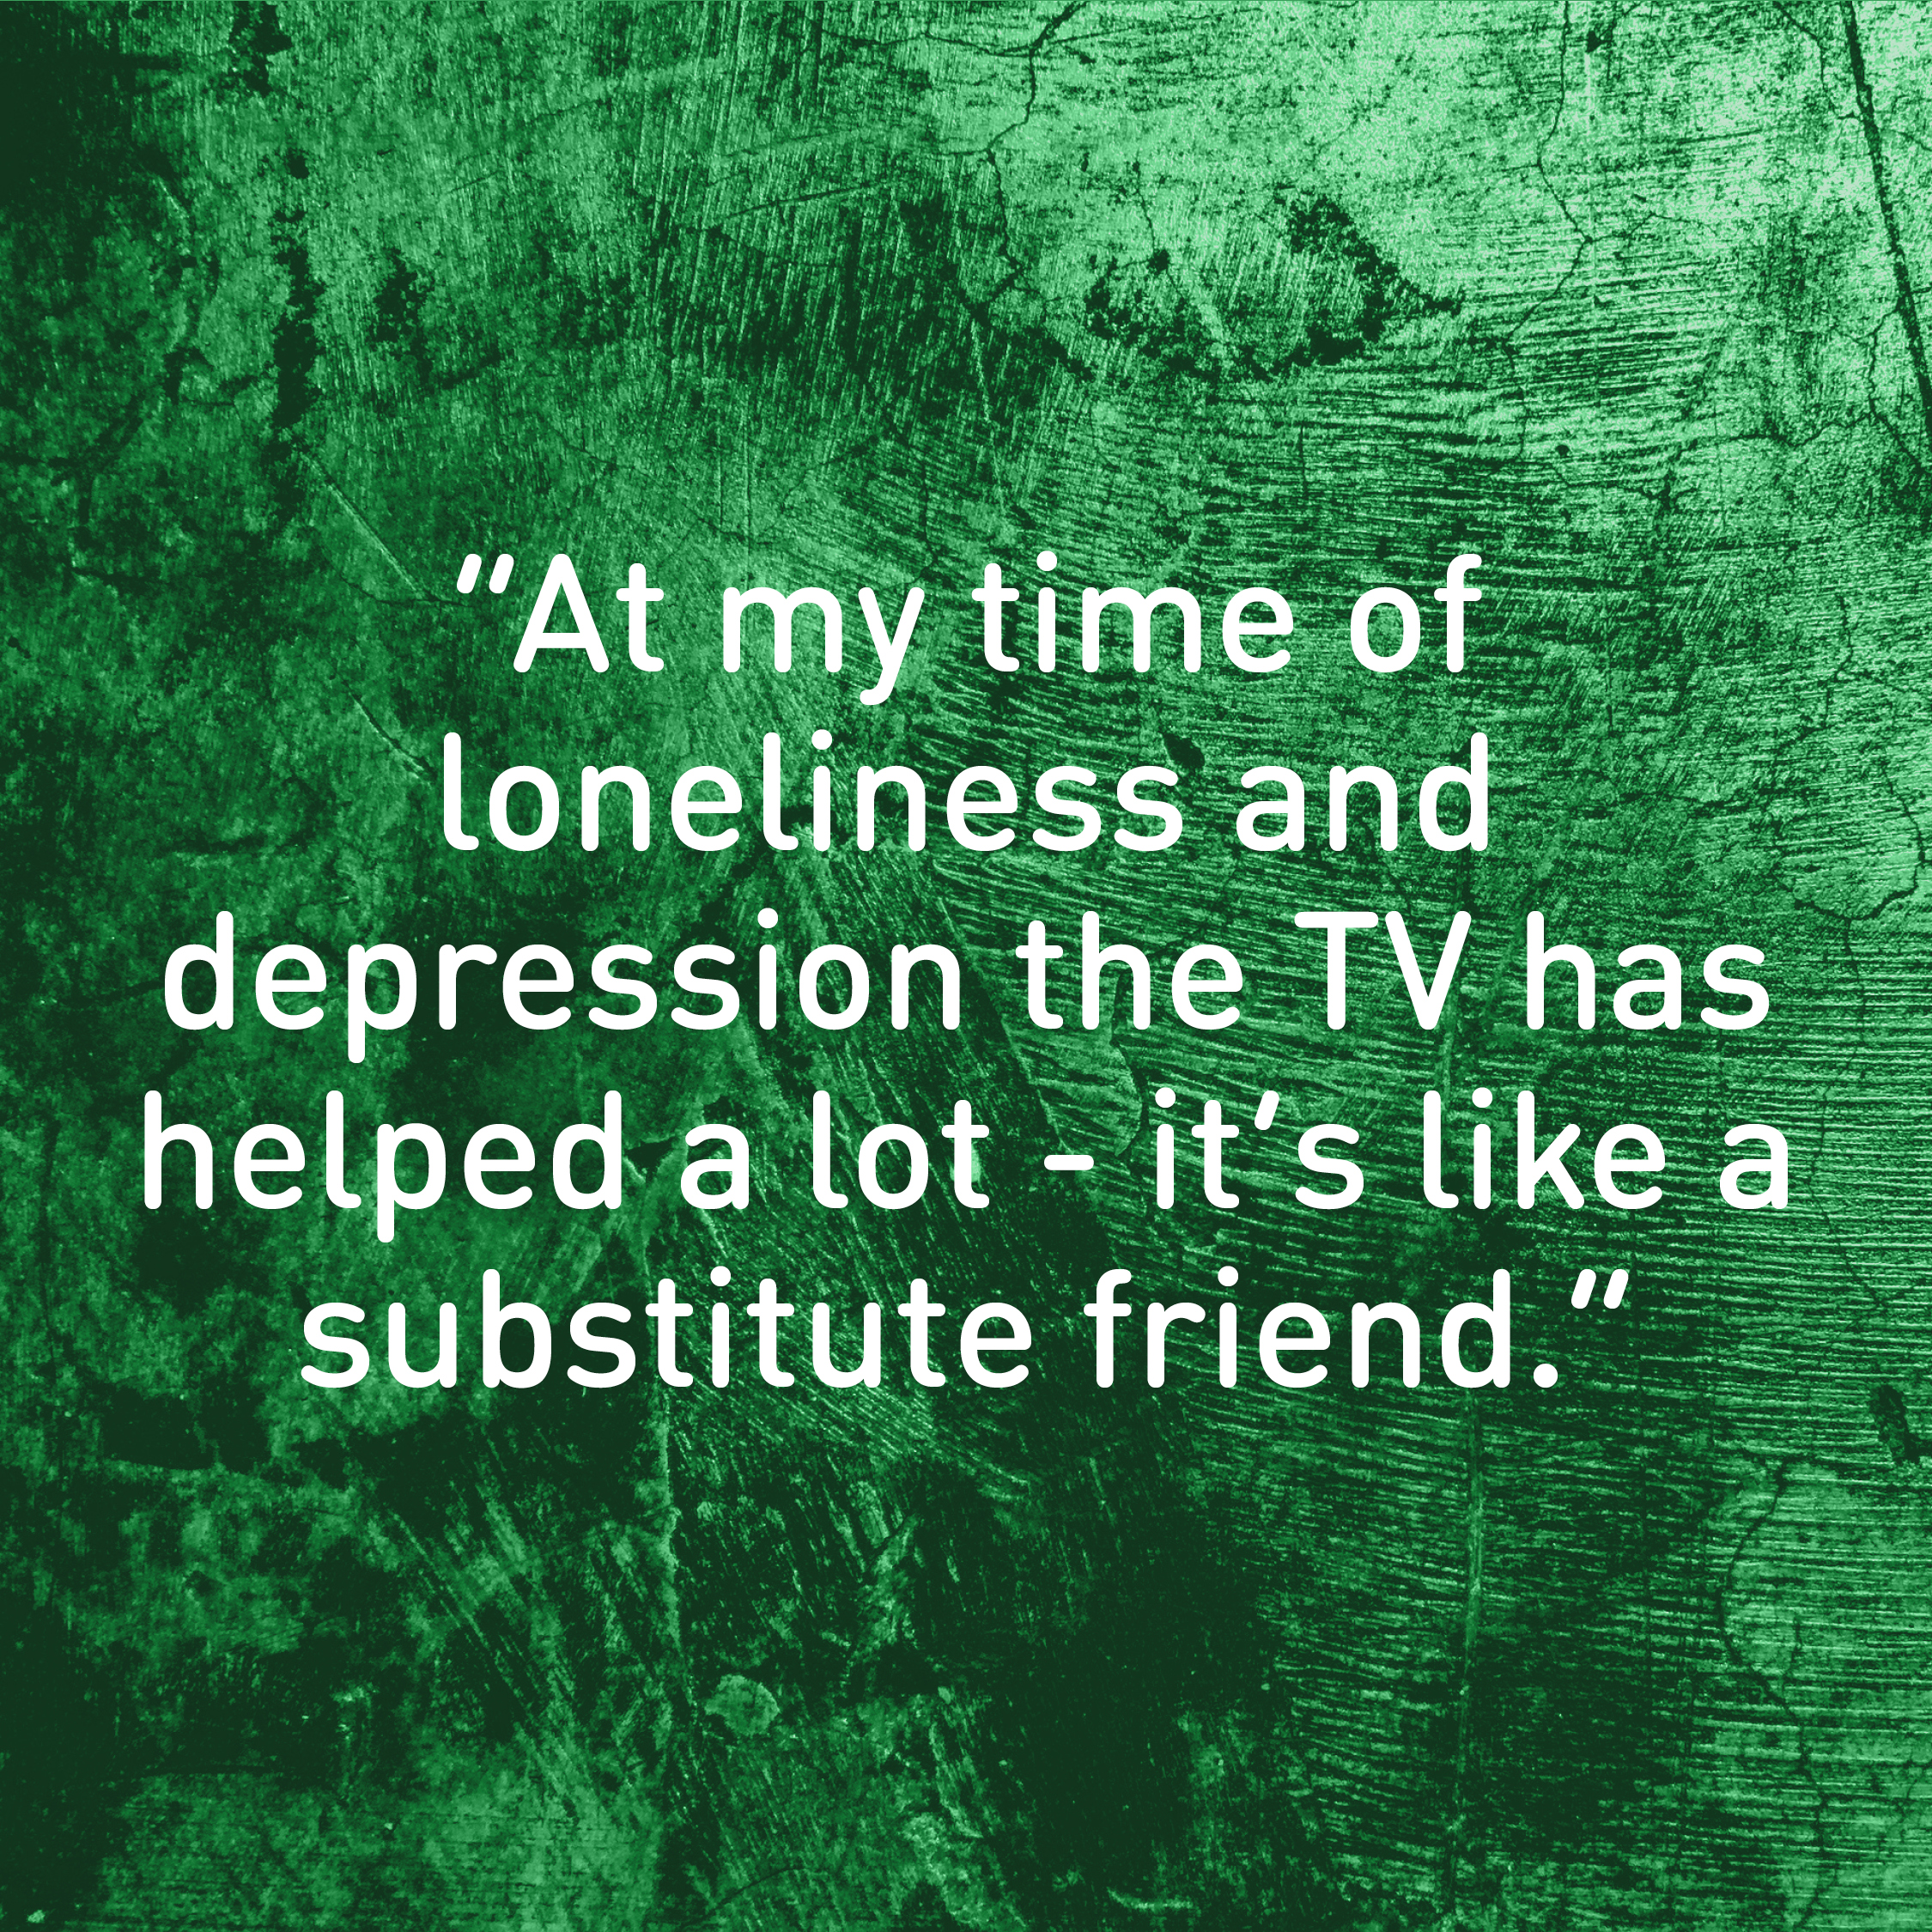 """At my time of loneliness and depression the TV has helped a lot. It's like a substitute friend."""